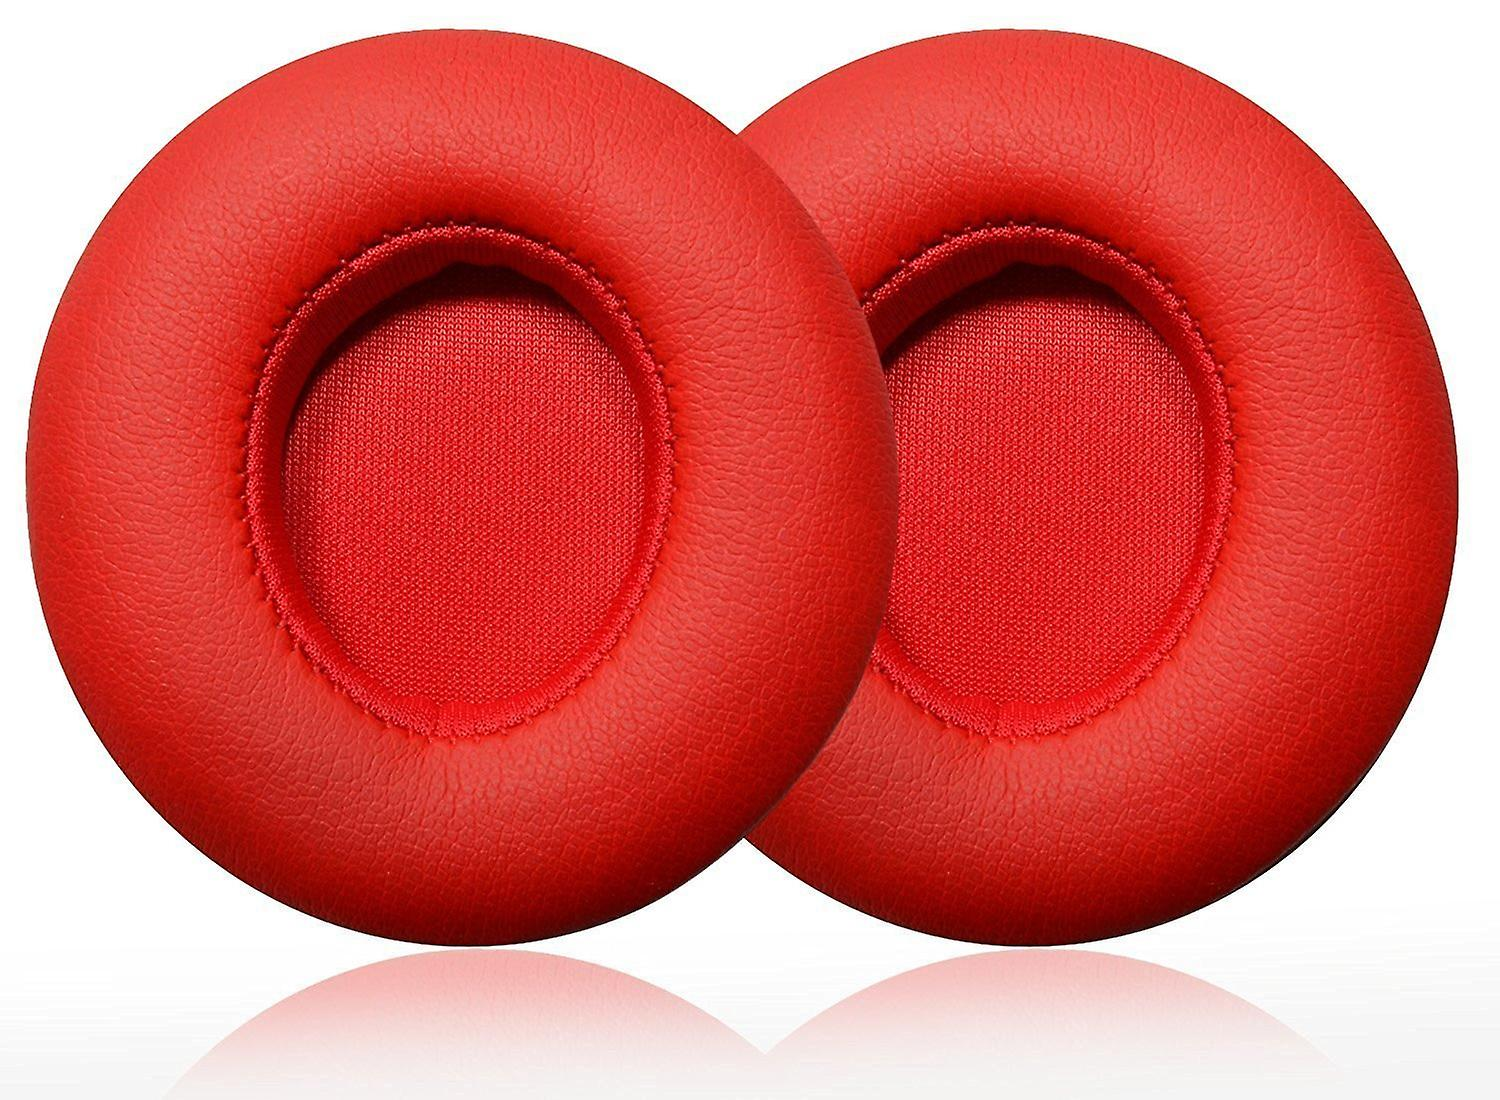 REYTID Replacement Red Ear Pad Kit for Apple Beats By Dr. Dre Solo3 & Solo3 Wireless Cushion - Solo 3.0 - 1 Pair Earpads